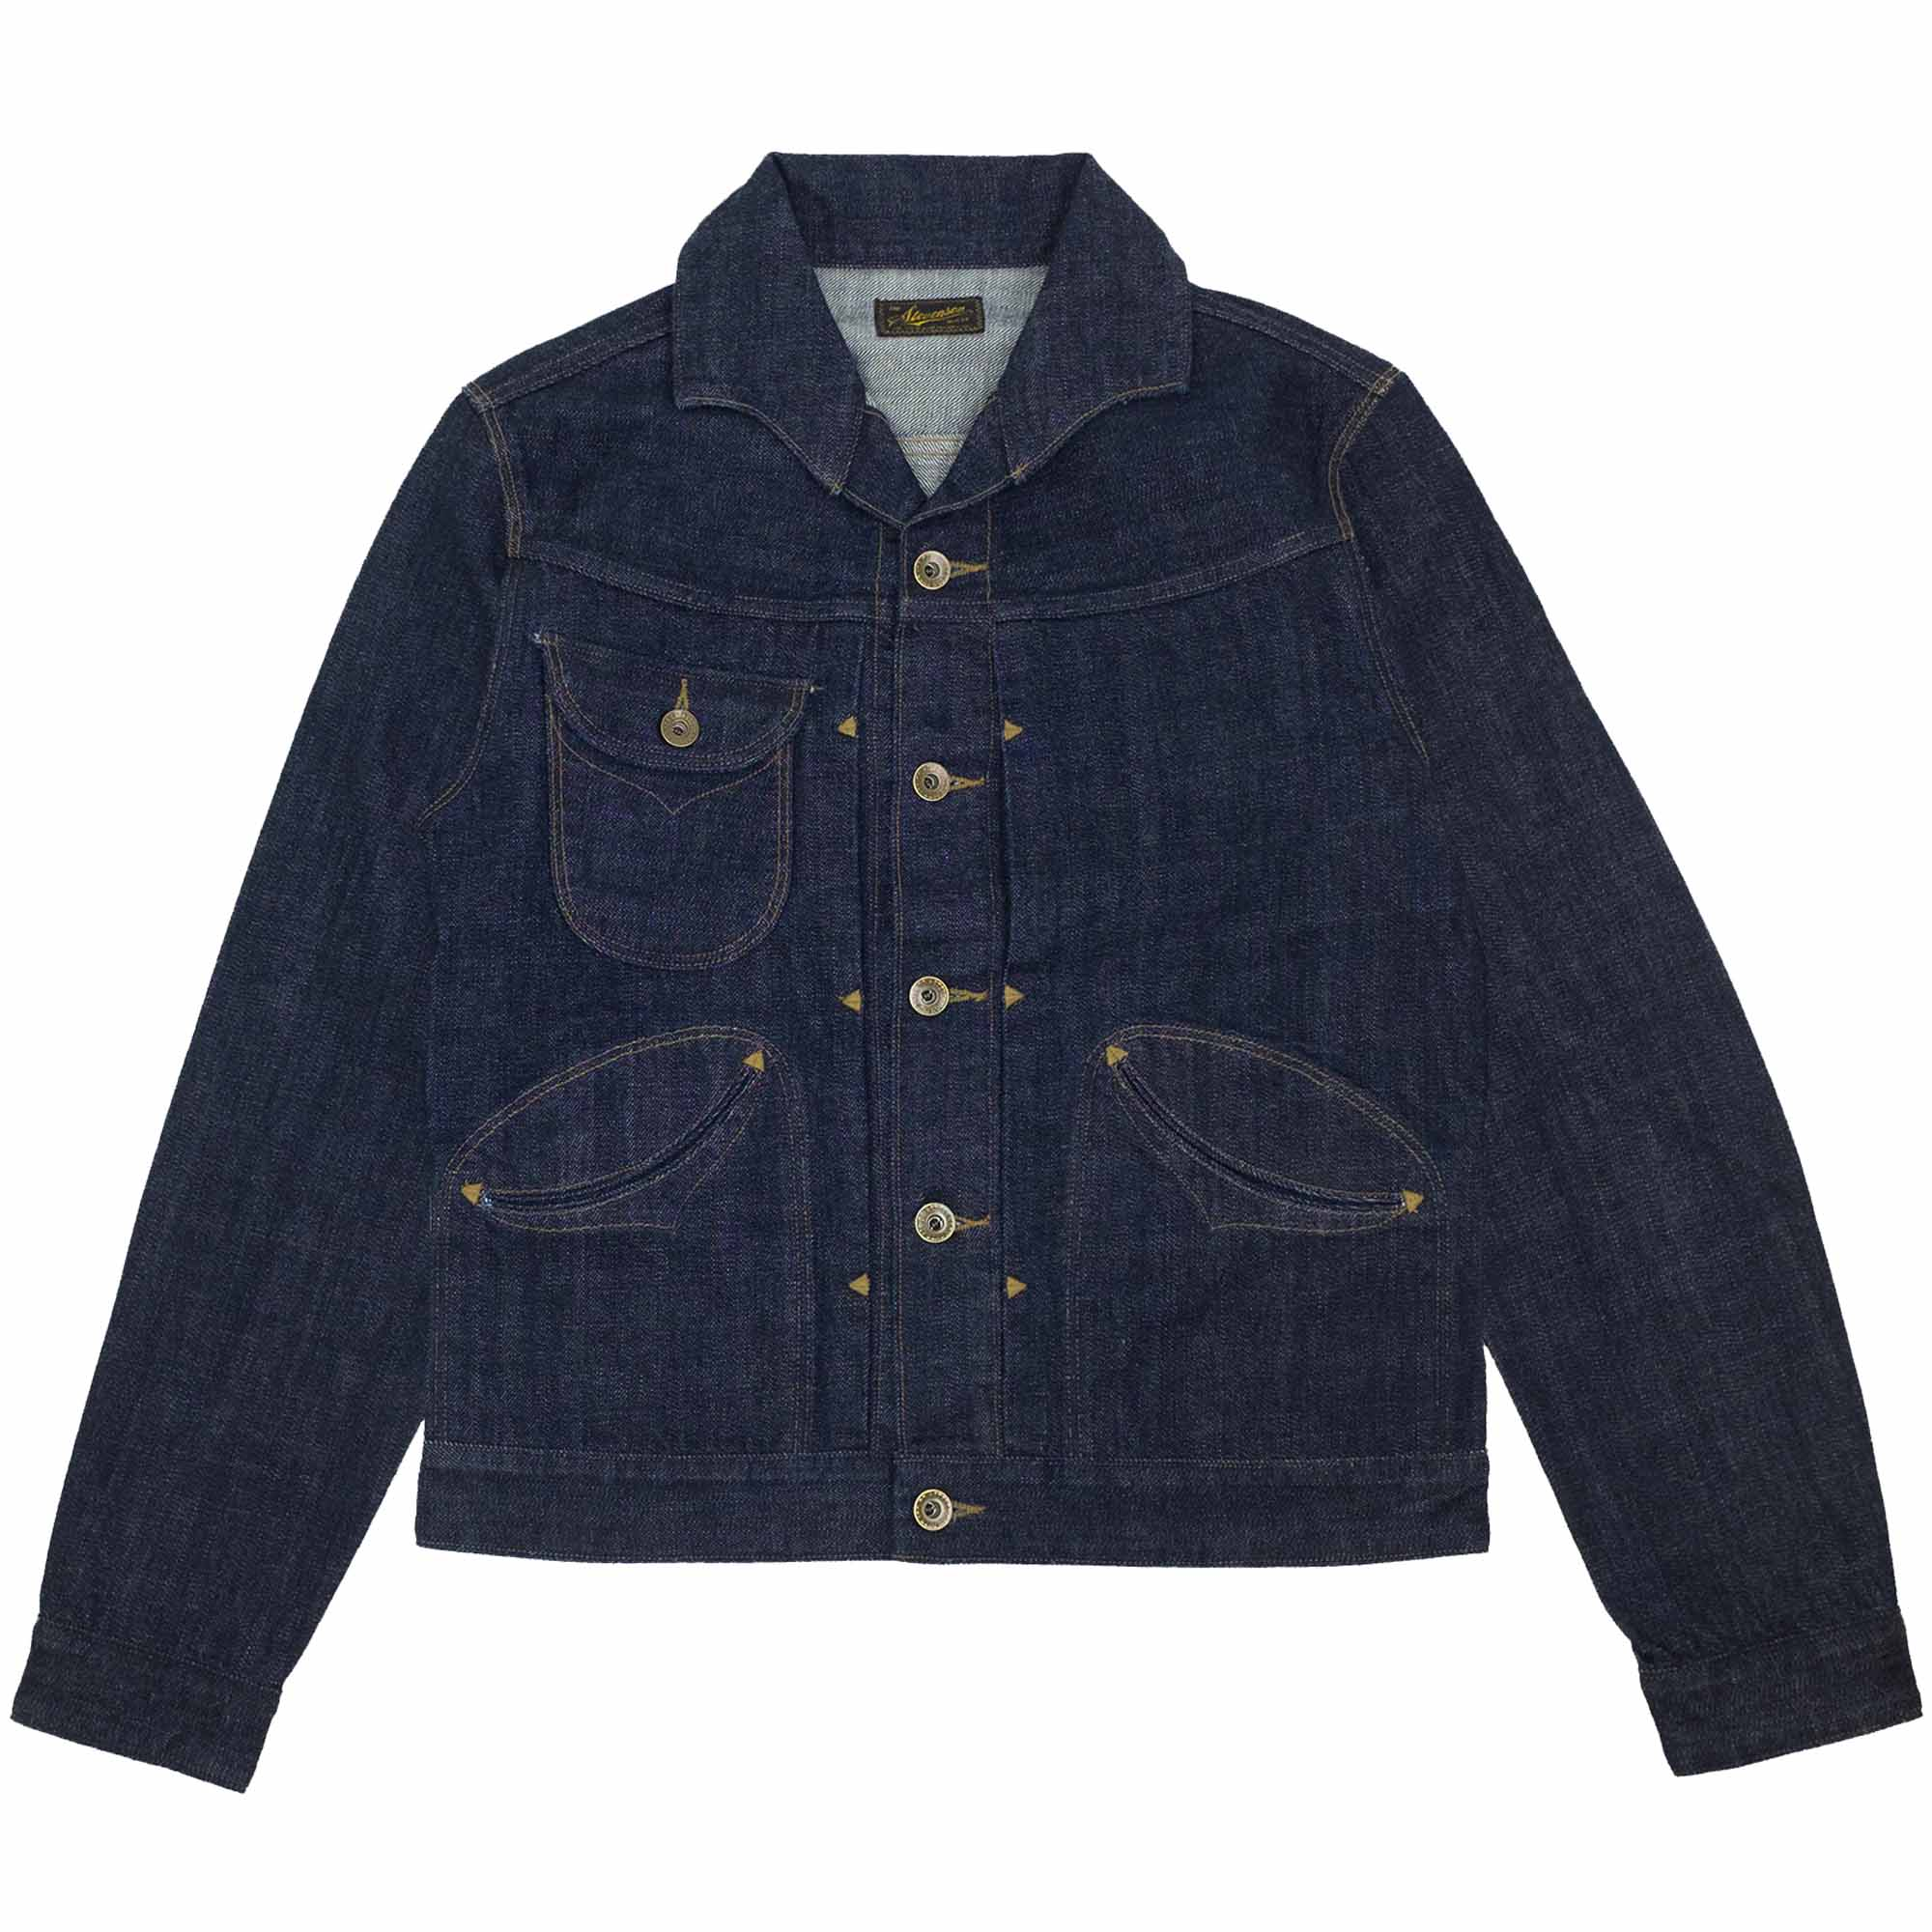 Stevenson Overall Co. Deputy Denim Jacket - Indigo